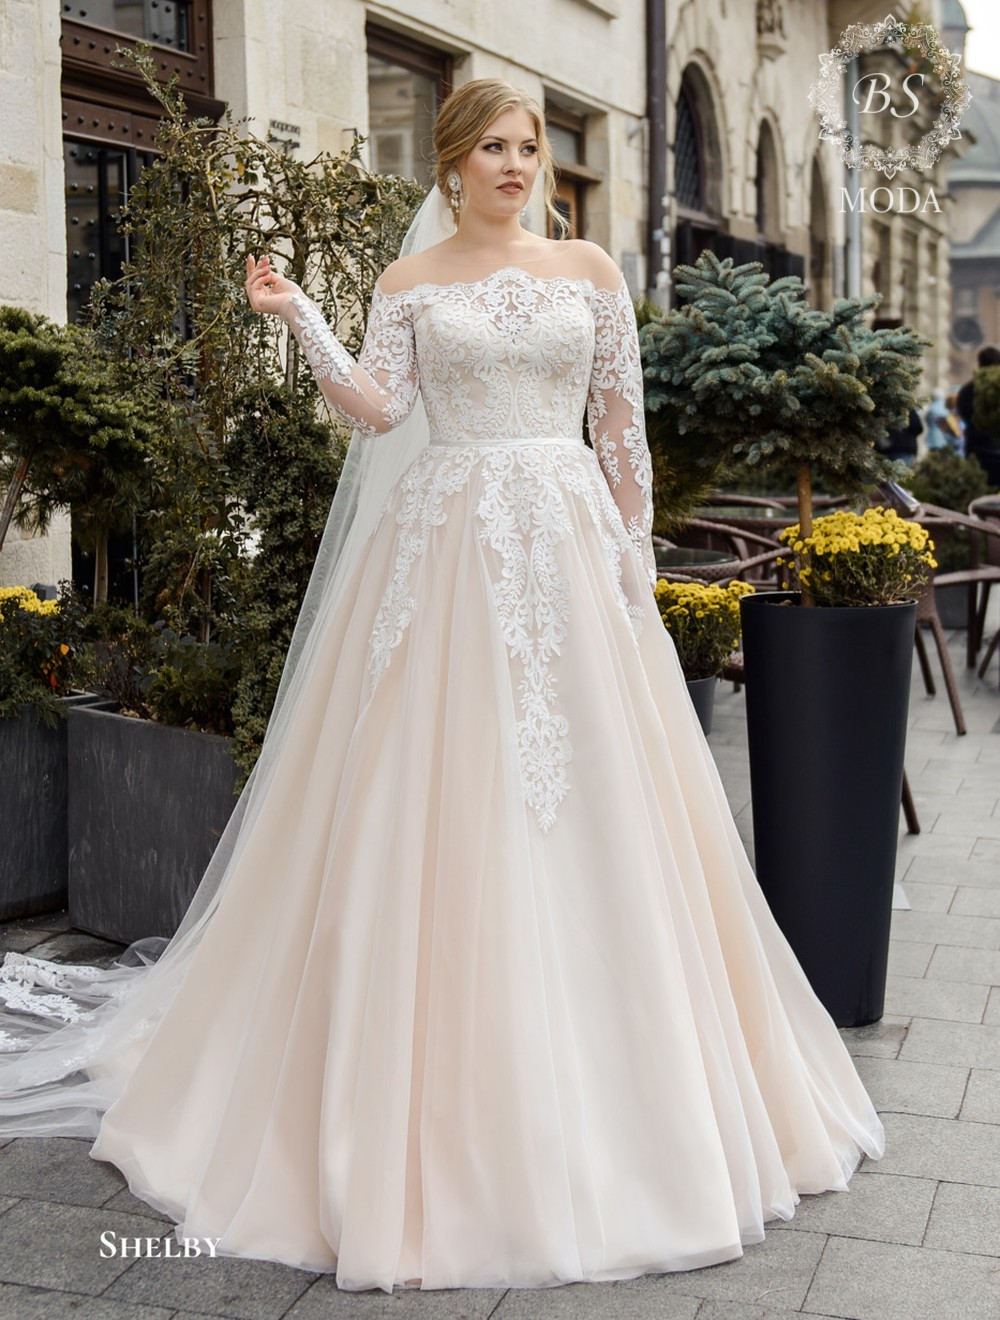 Shelby wedding dress Gorgeous beauty collection